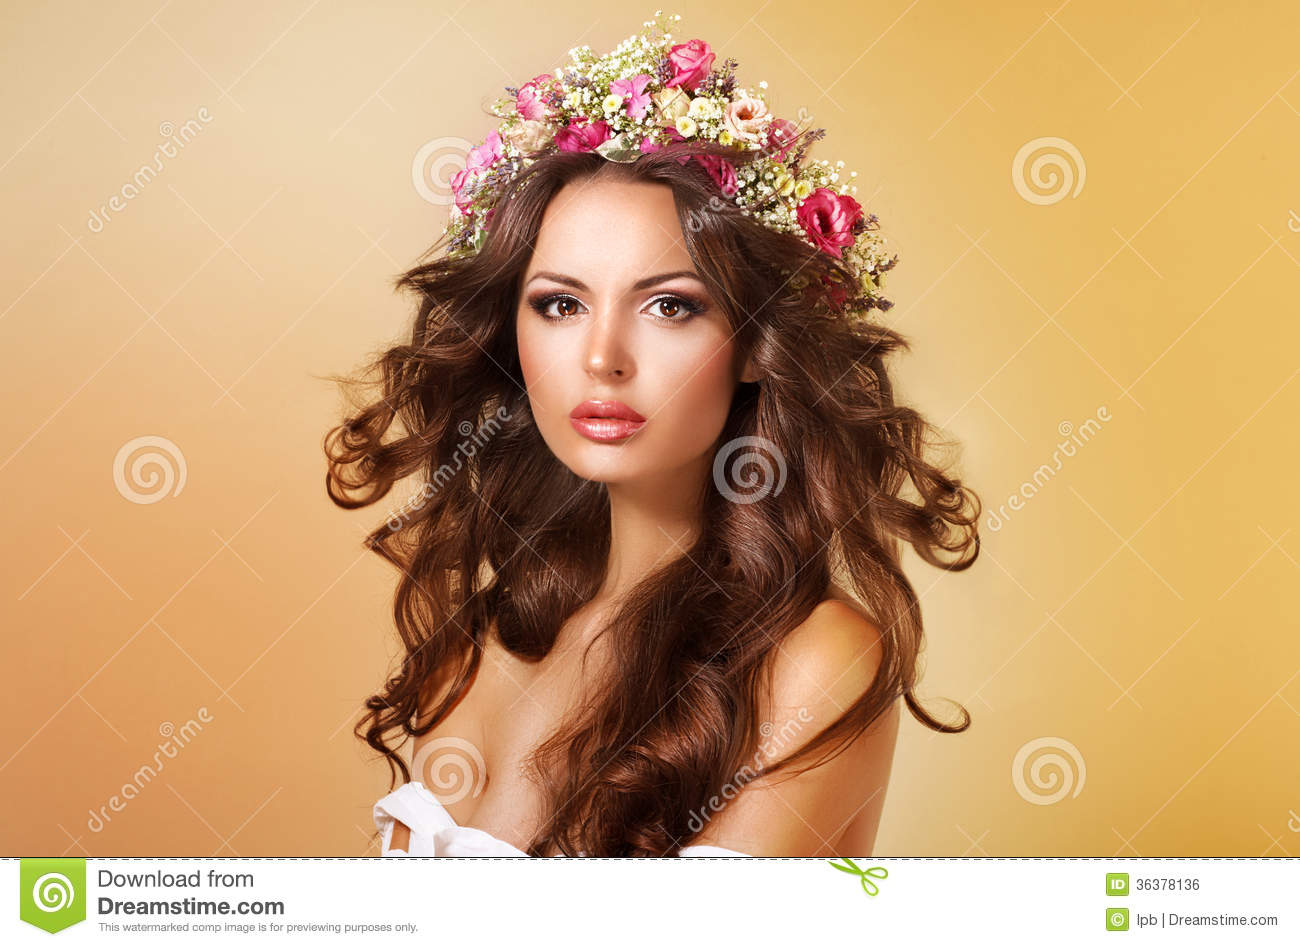 Elegance classy adorable lady with flowers and flowing hair adorable beautiful classy elegance flowers flowing hair lady dhlflorist Gallery